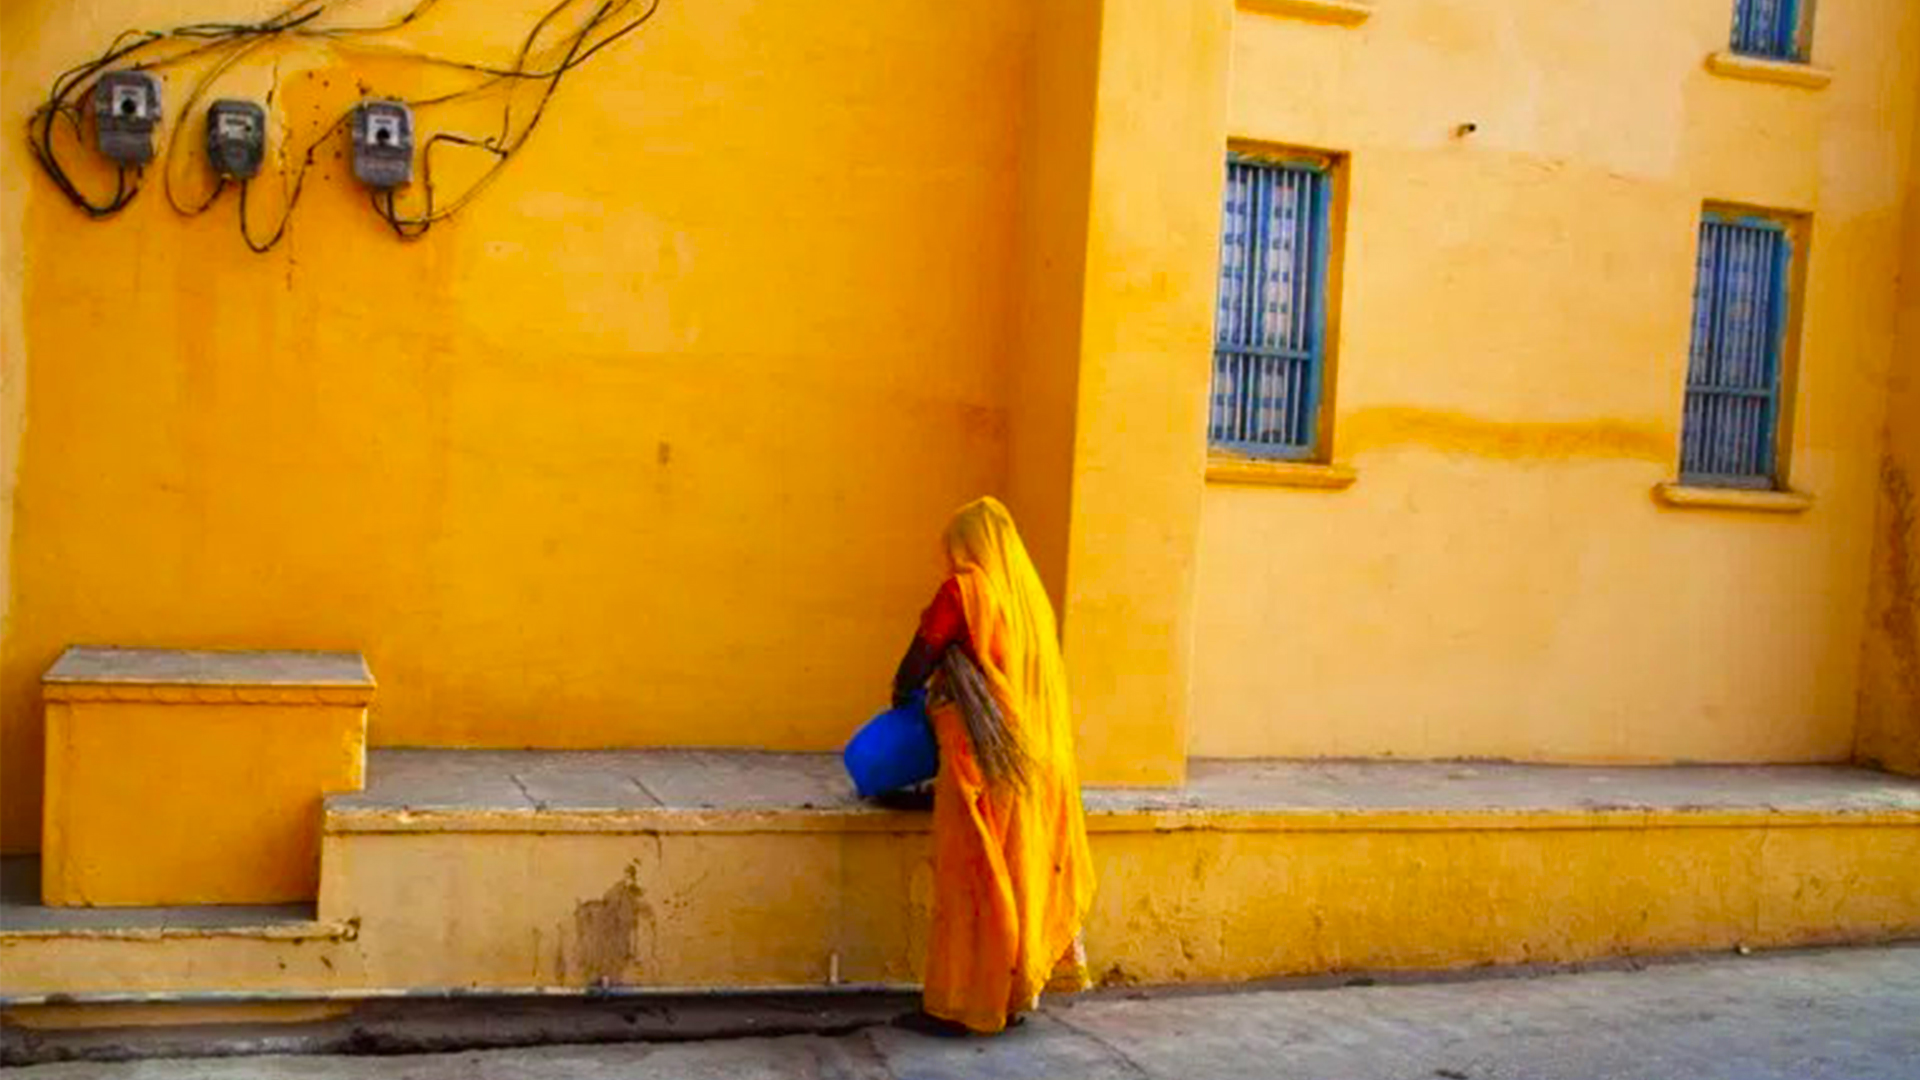 Mastering Color: The Psychology Of The Color Yellow And Its Use In Photography